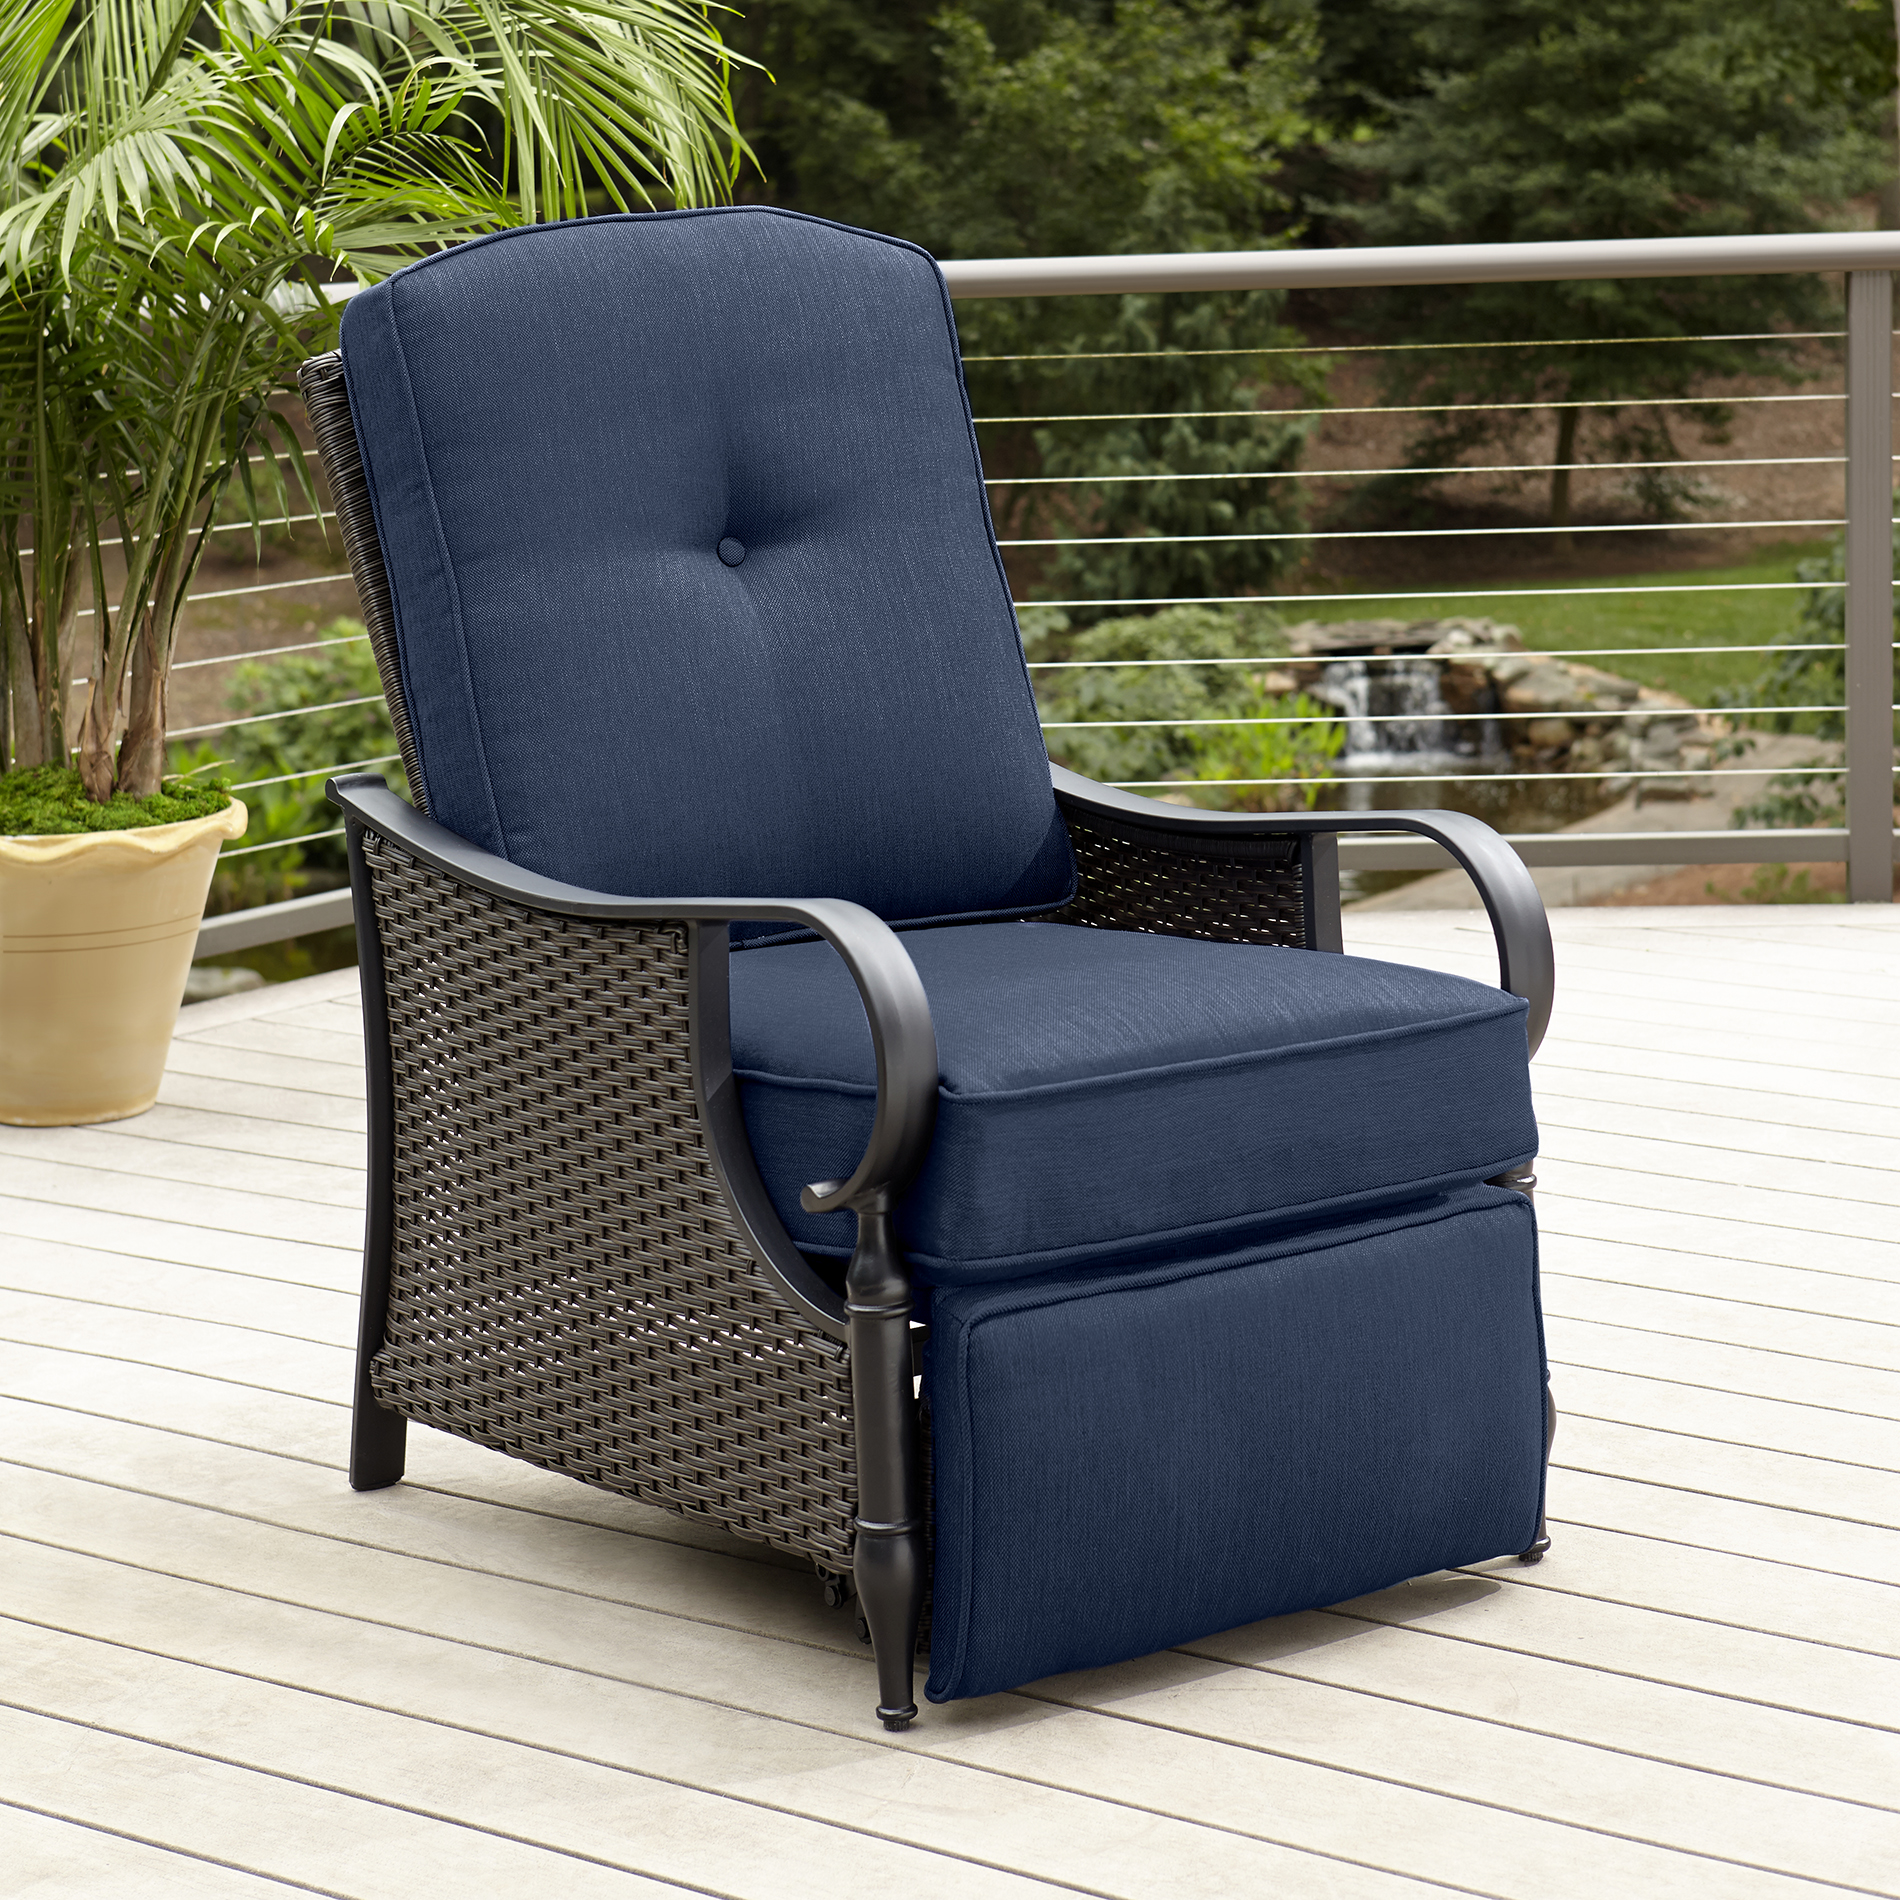 Outdoor Reclining Chair La Z Boy Outdoor Kayla Recliner Blue